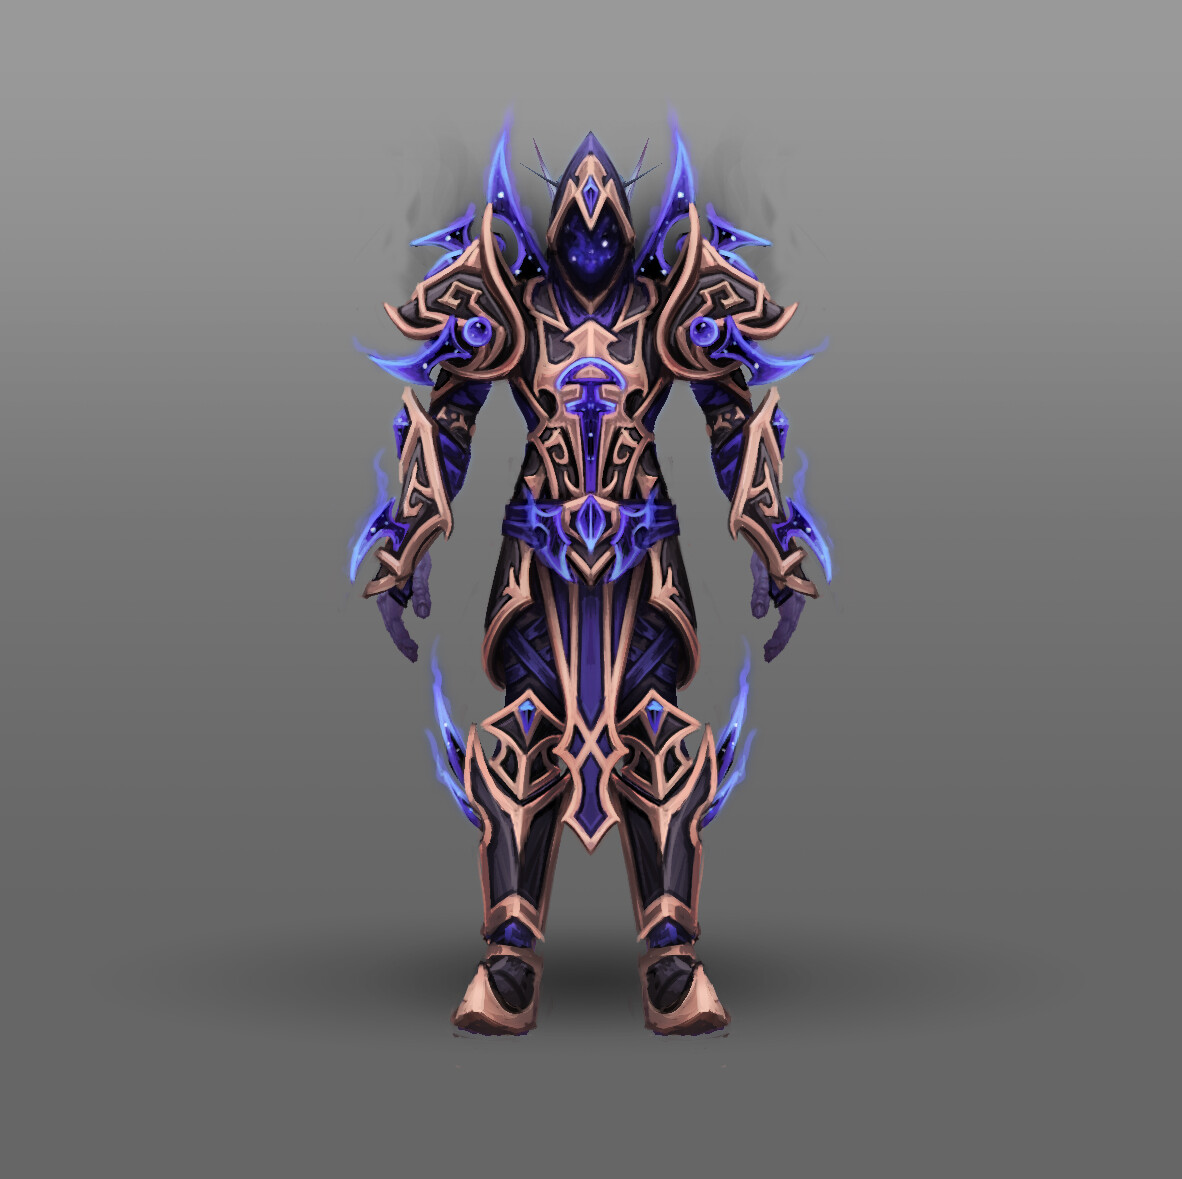 Artstation Fan Art World Of Warcraft Racial Class Armor Design Voidelf Arthur Lorenz Blood elf & void elf. of warcraft racial class armor design